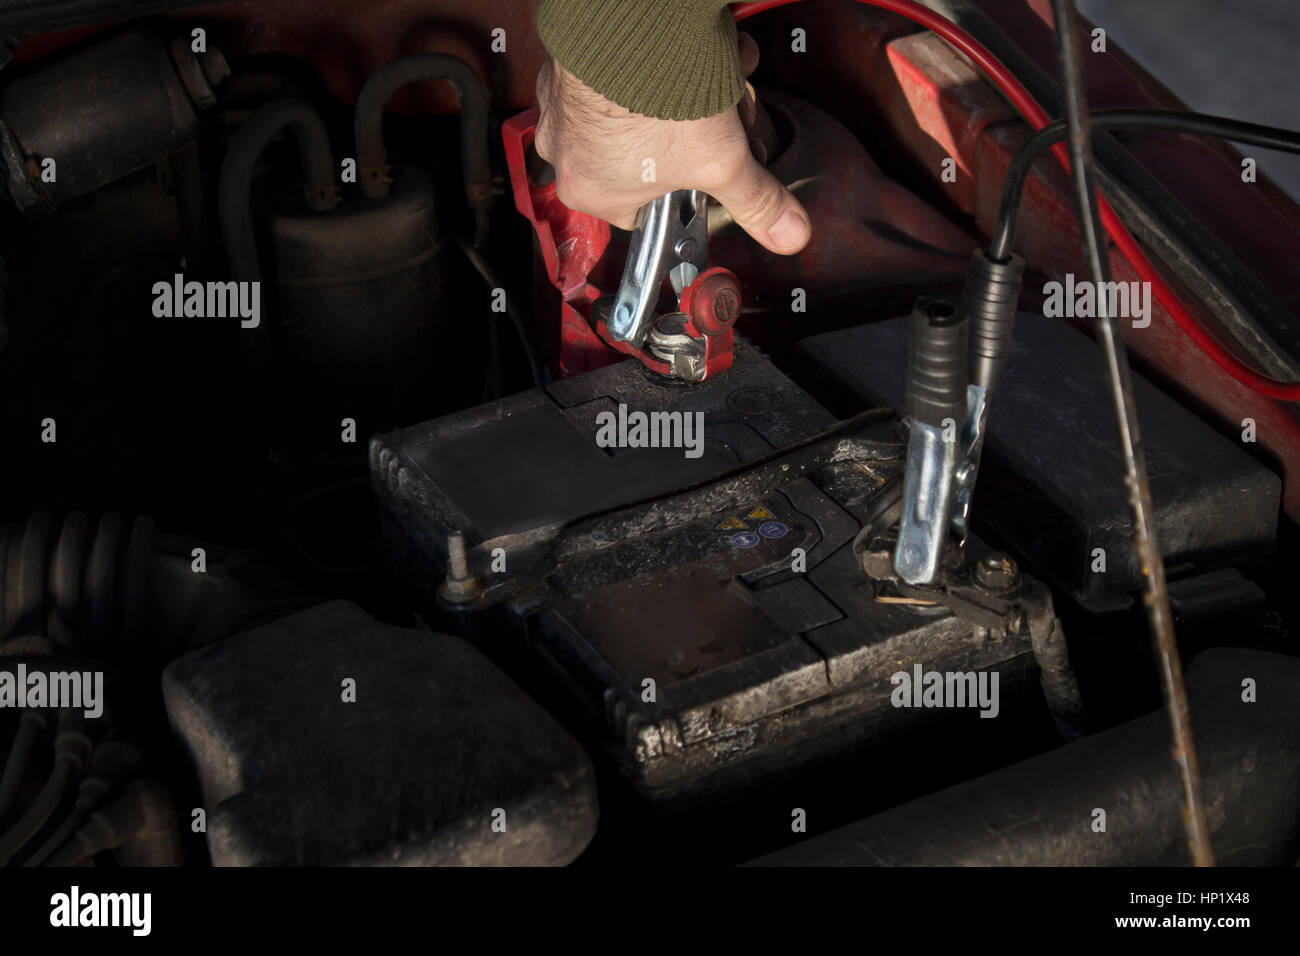 Mechanic jumper cables connected to a discharged battery. Firing the car in the winter by the jumper cables. - Stock Image